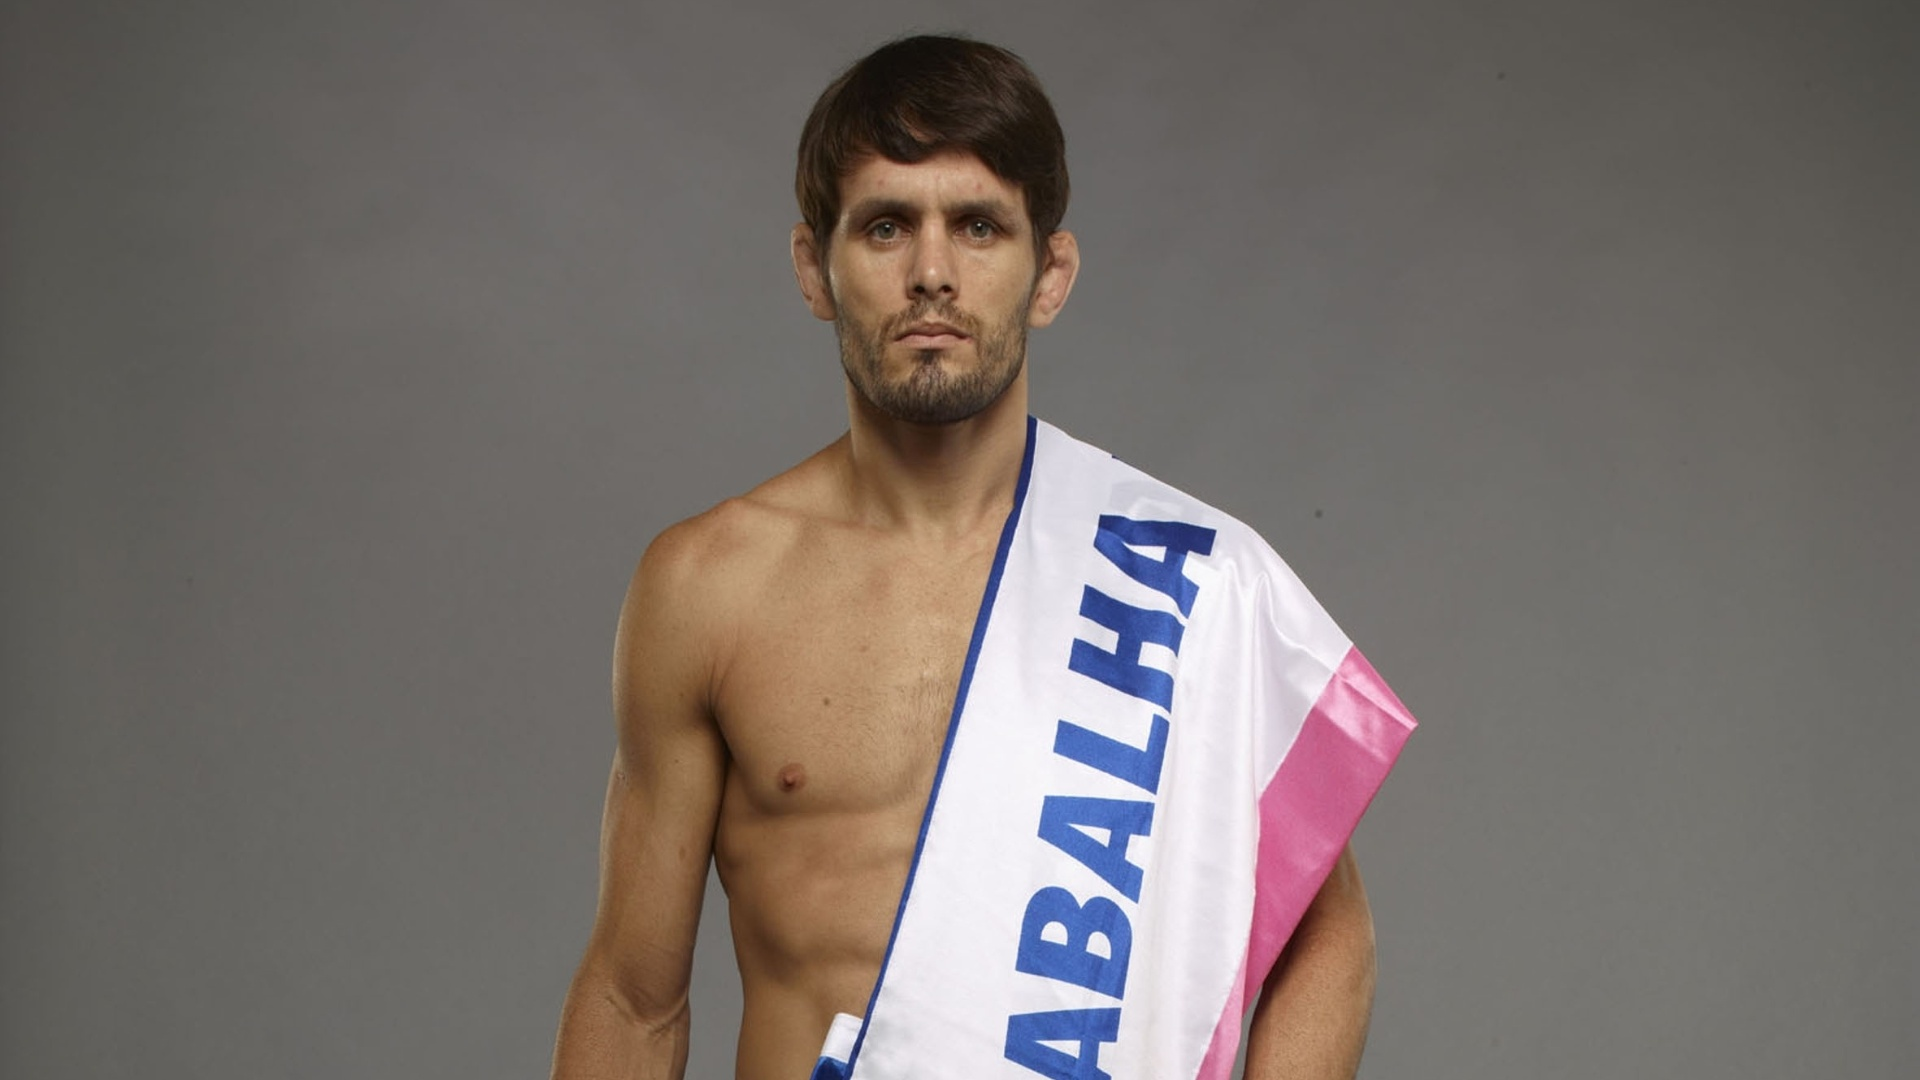 Rodrigo Damm, peso pena do TUF Brasil